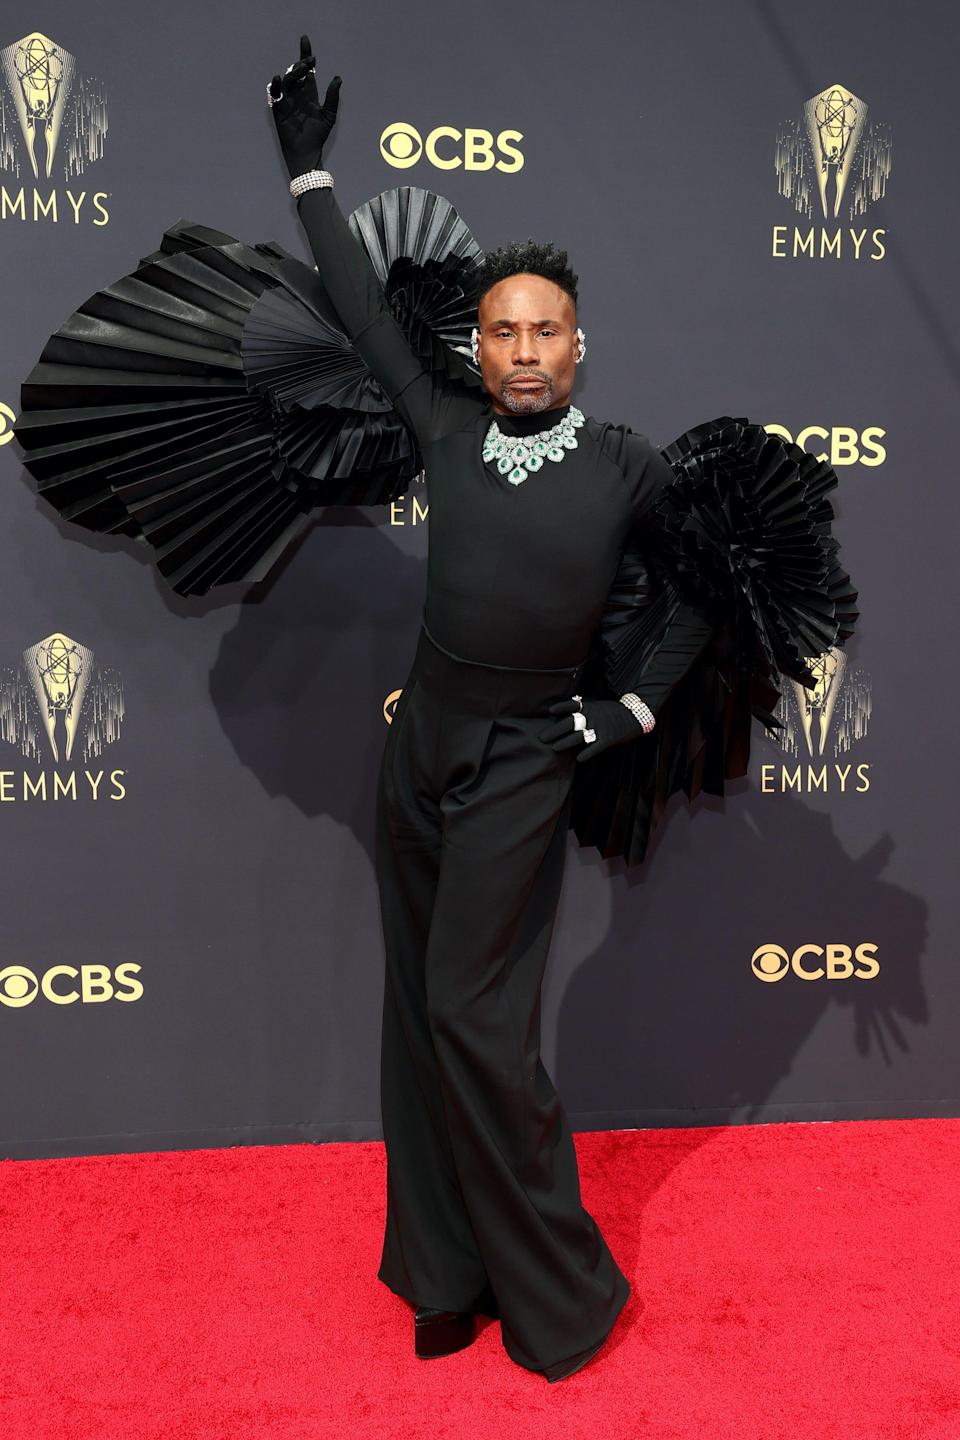 Billy Porter wears a black shirt, pants, and wings on the Emmys carpet.